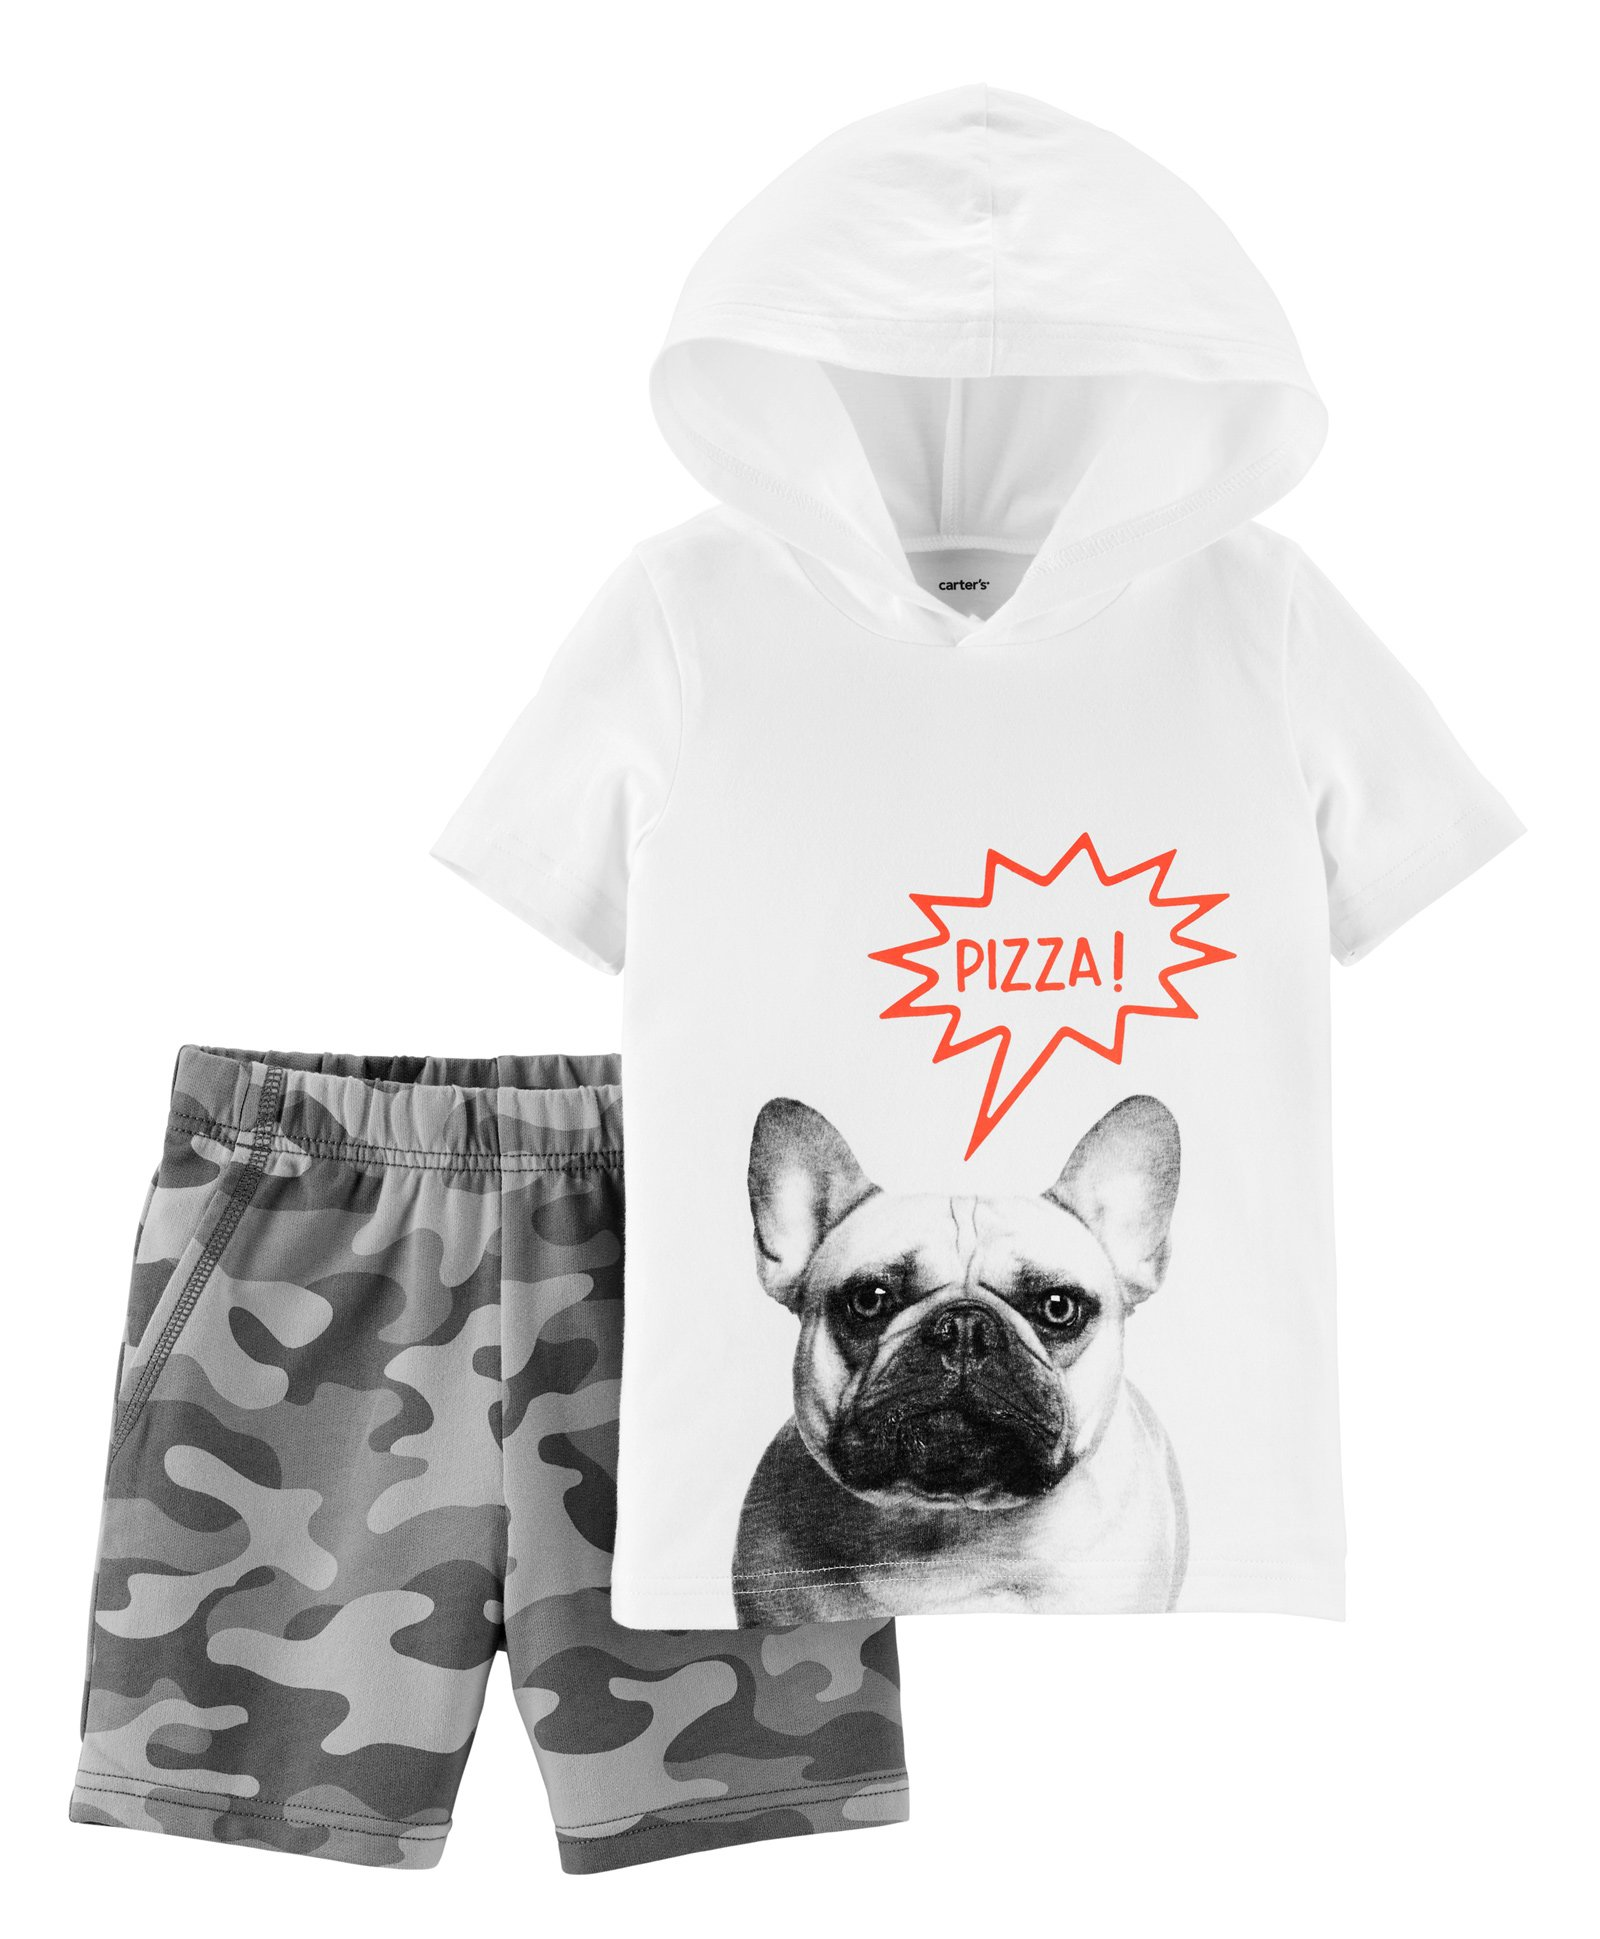 Camo Hoodie India Buy Carters 2 Piece French Bulldog Hoodie Camo Short Set White For Boys 3 6 Months Online In India Shop At Firstcry 2196738